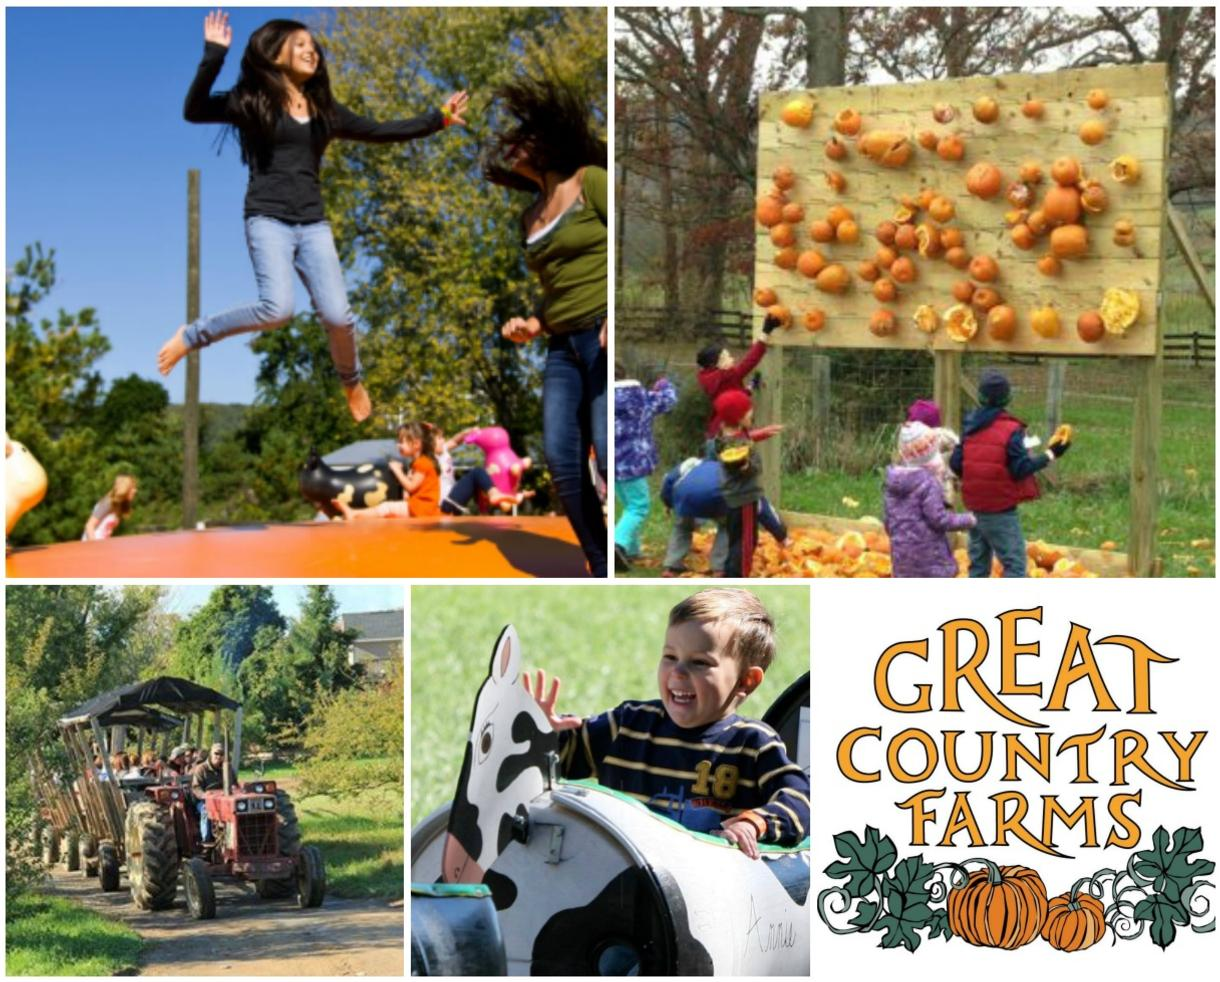 $5 for Great Country Farms Admission - November 1st - 20th - PUMPKIN SMASHING! (50% Off)